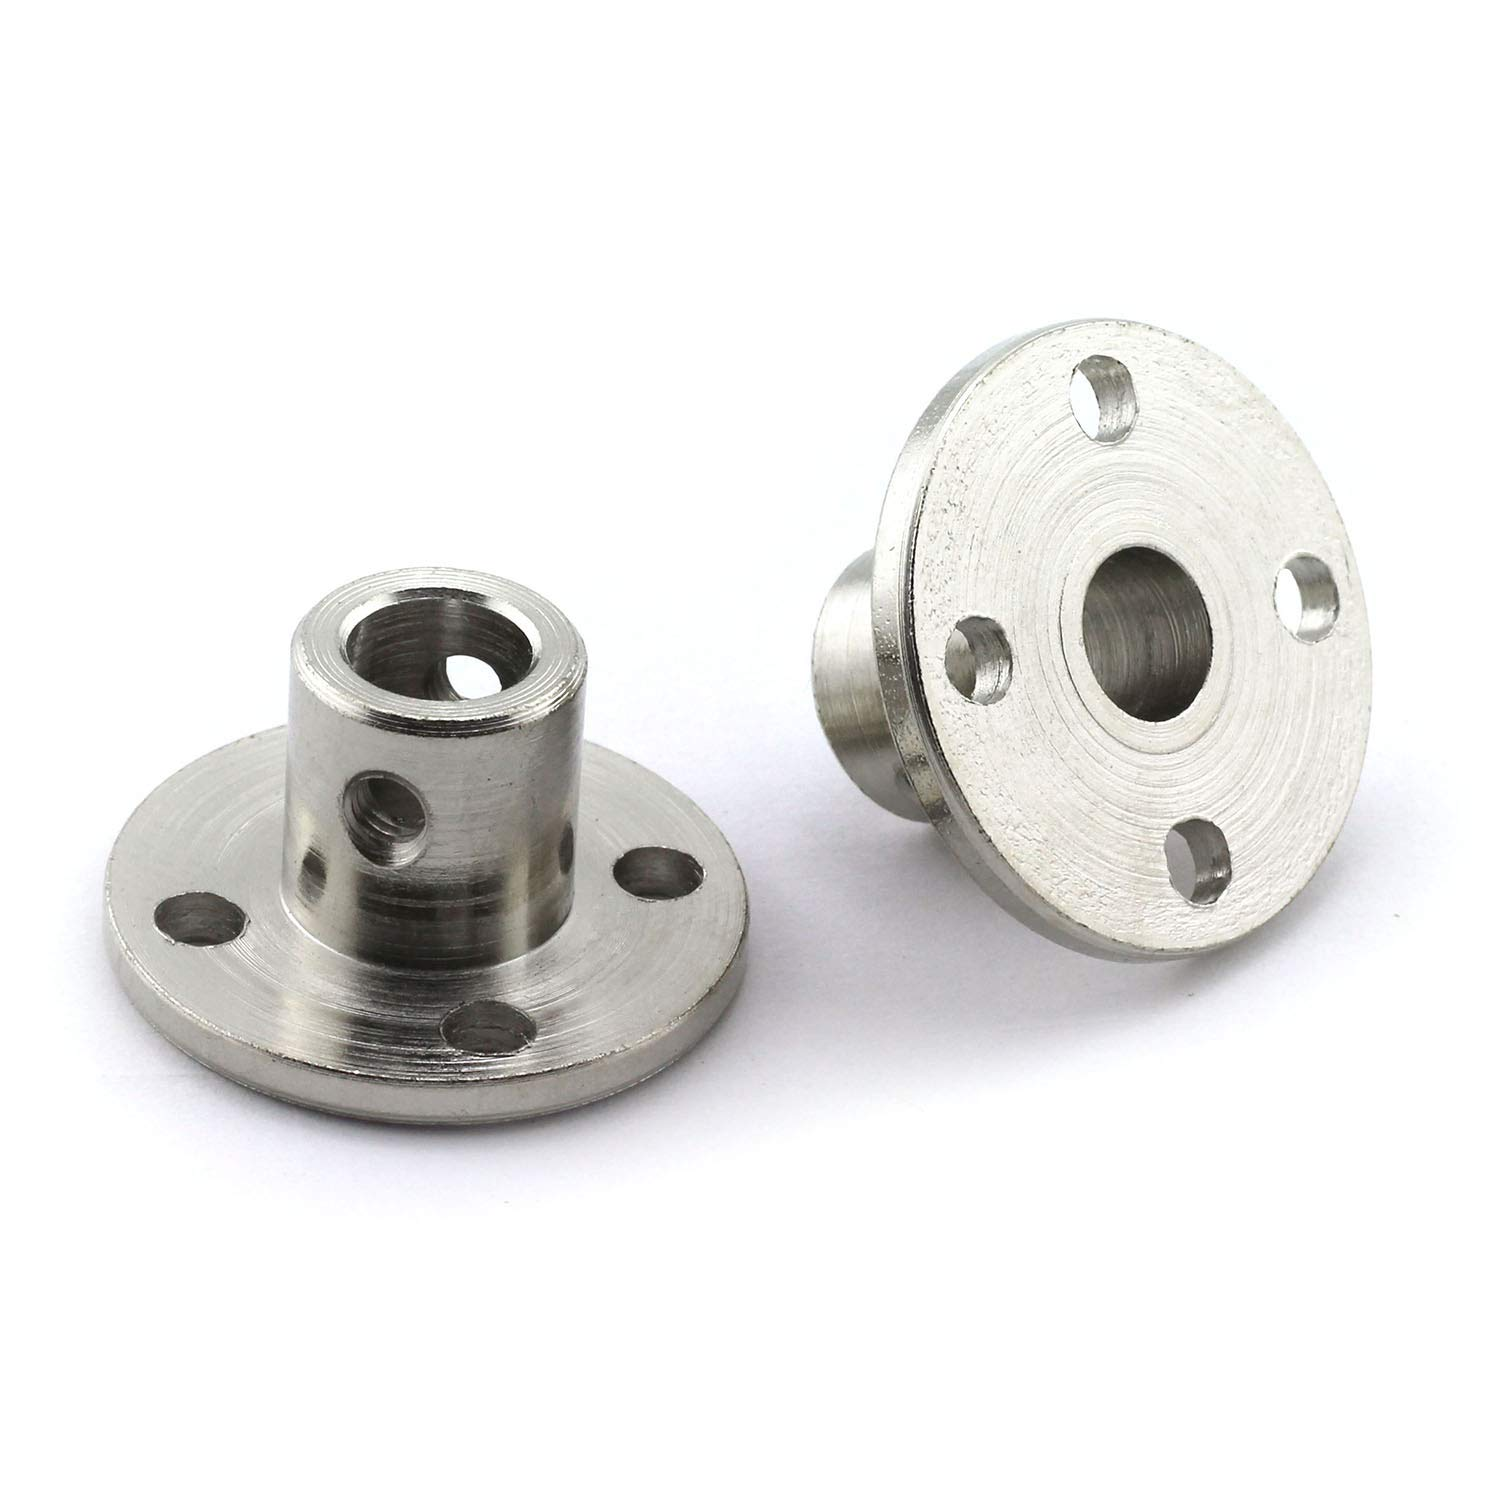 2 pcs 6mm Shaft Axis Fittings for DIY RC Model Motors Rigid Guide Steel Model Coupler Accessory 2 Pack 6mm Flange Coupling Connector High Hardness Coupling Connector-Silver.